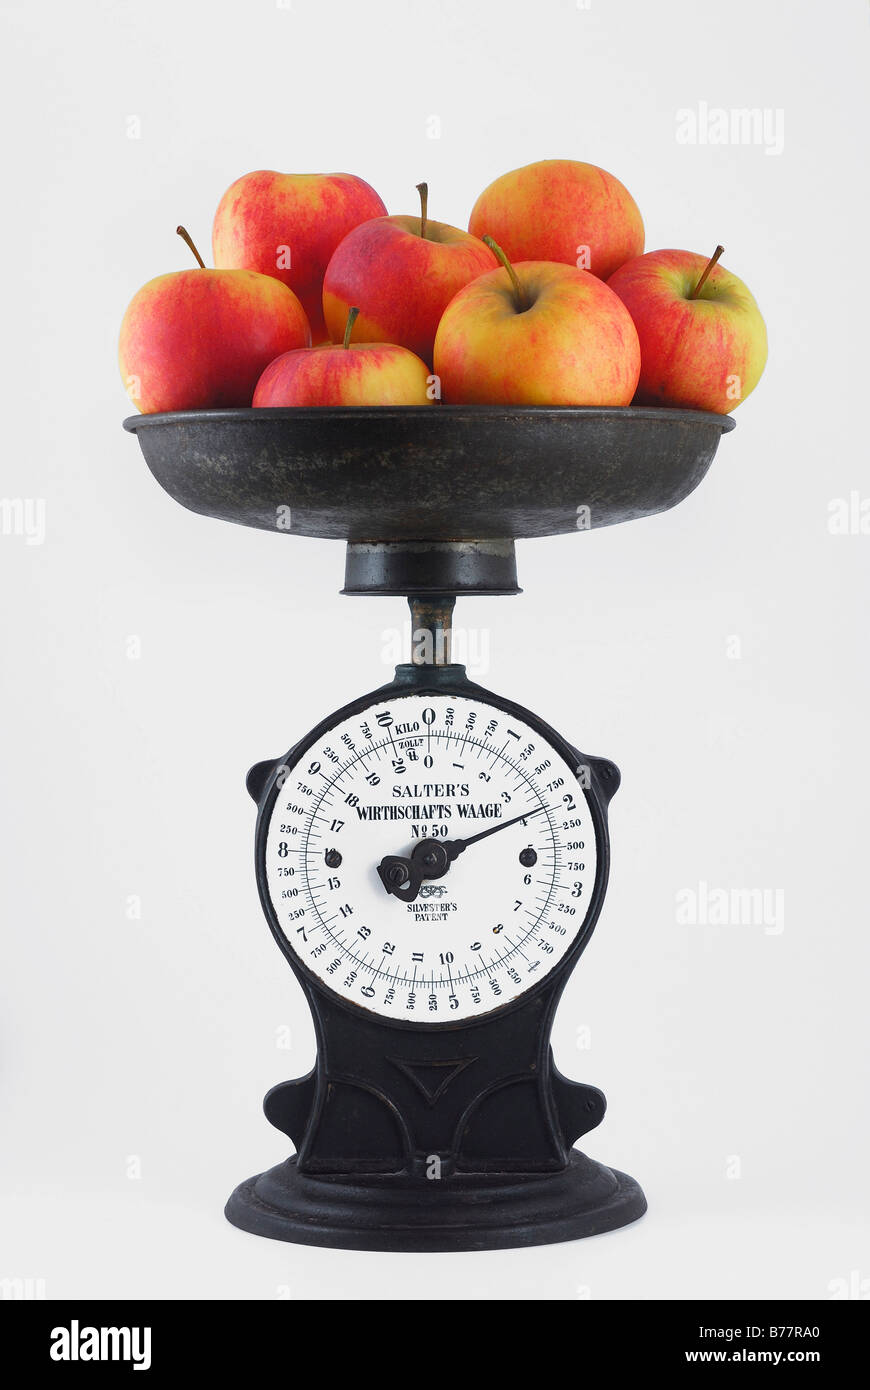 Antique iron kitchen scales with scale pan filled with almost 2 kg of apples - Stock Image